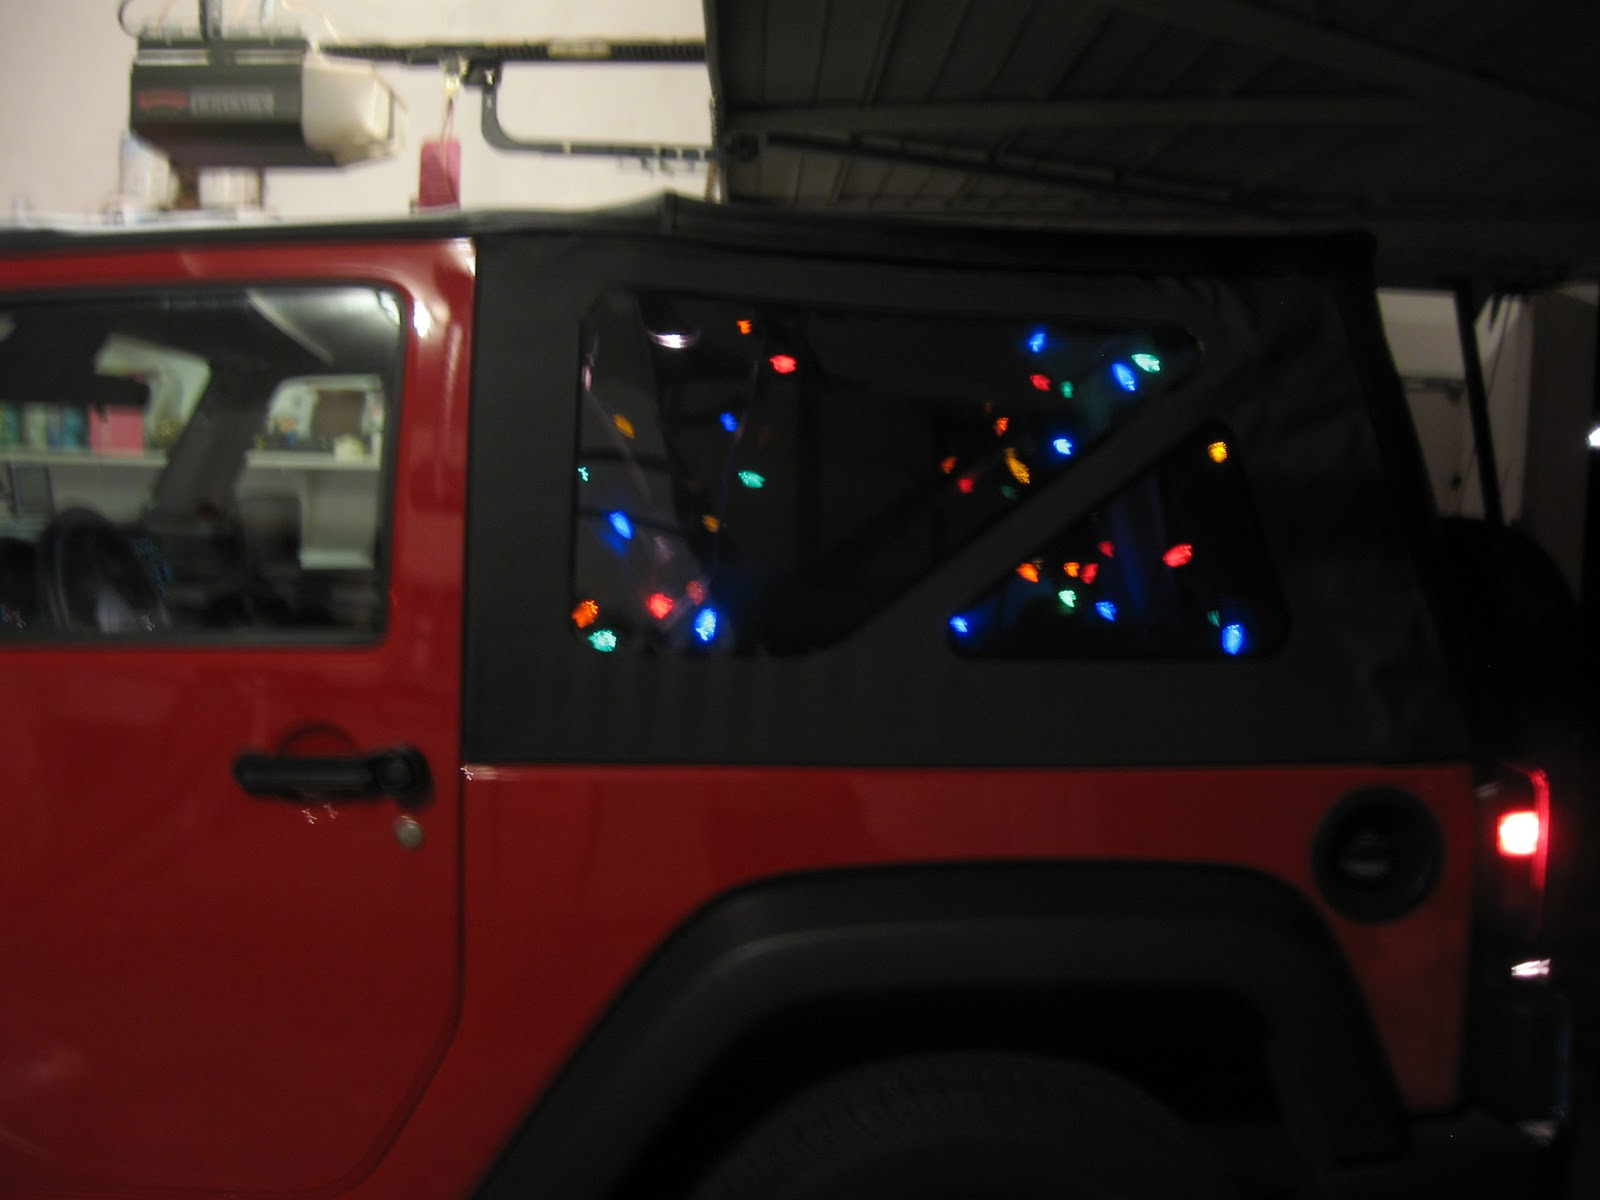 chris strung christmas lights in the back of the jeep he has an adapter that turns his cigarette lighter into a traditional household outlet to plug the - Jeep Christmas Decorations